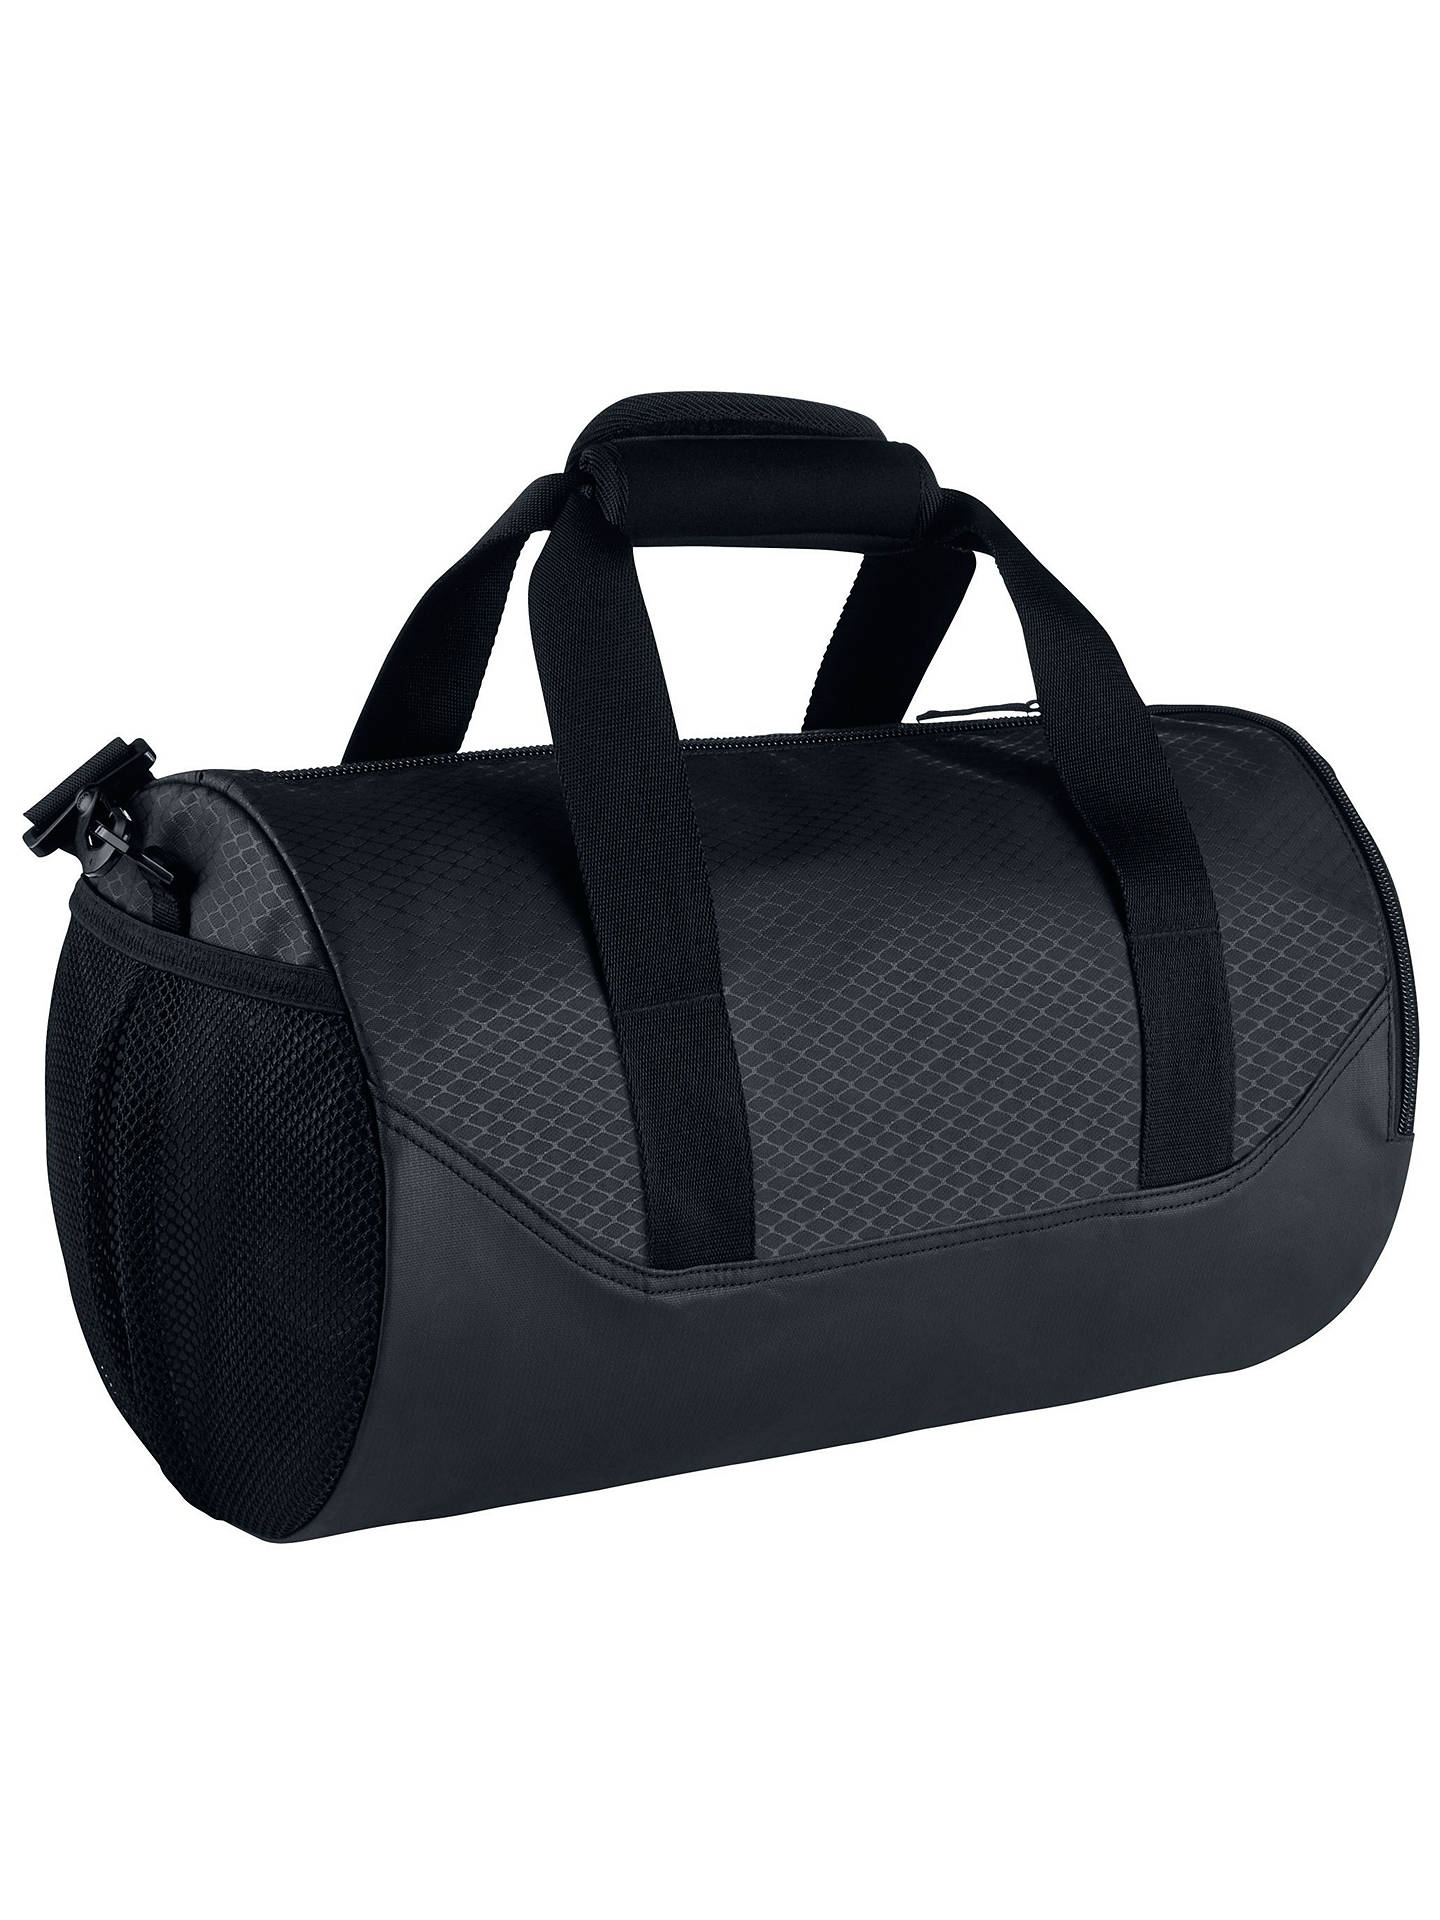 bad3094027 ... Buy Nike Team Training Mini Duffle Bag